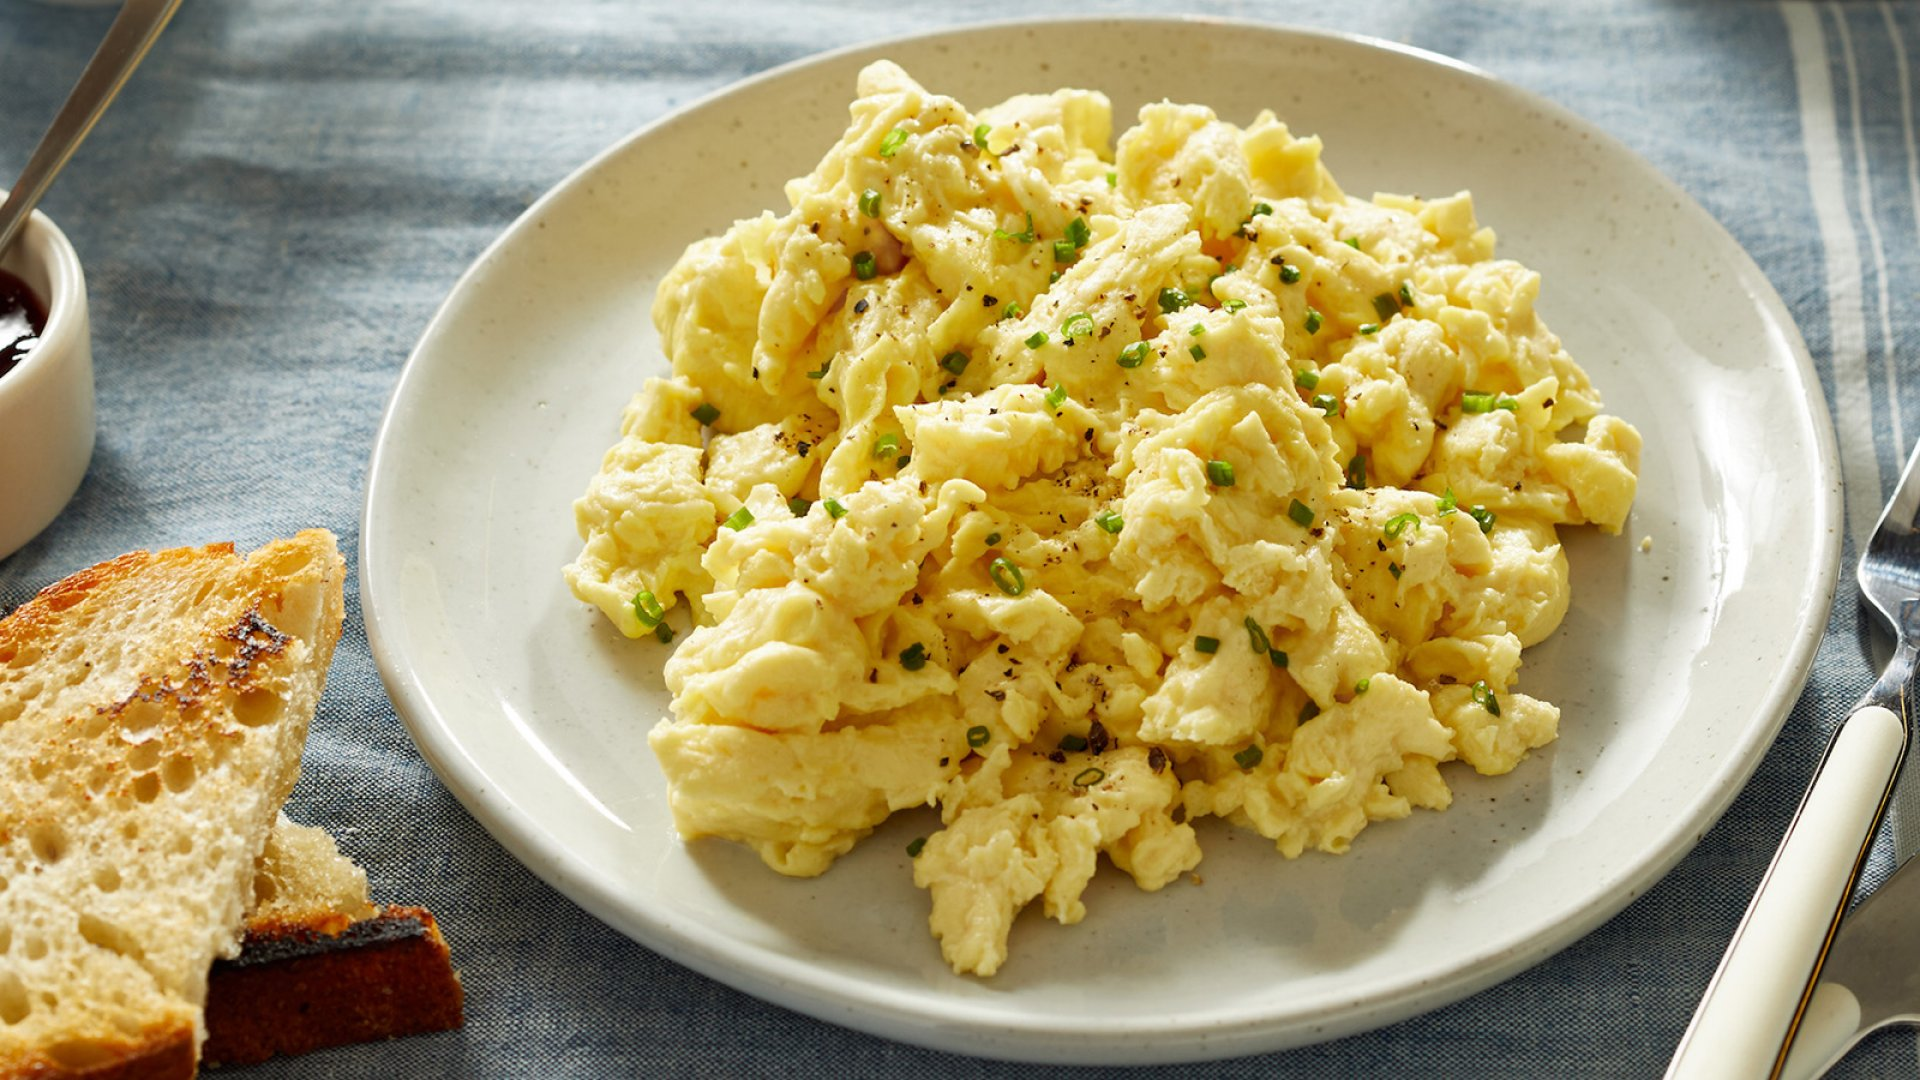 Just Scramble, Hampton Creek's newest animal protein substitute